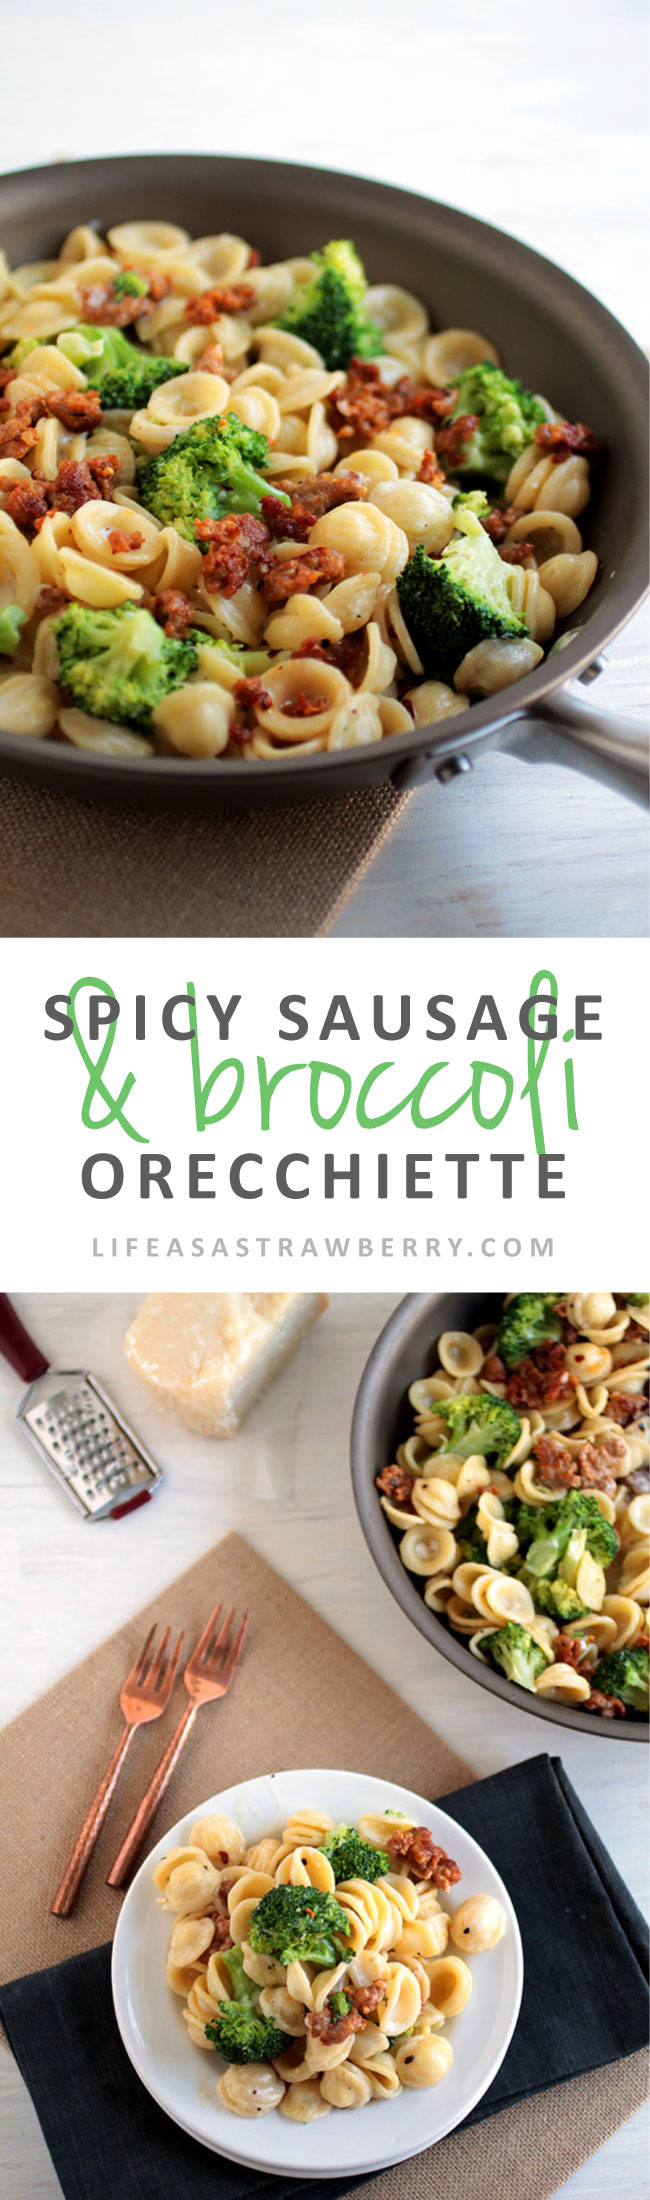 Spicy Sausage and Broccoli Orecchiette | This easy pasta recipe is perfect for busy weeknights! With spicy Italian sausage, pasta and broccoli for a hearty, filling meal with a quick, spicy cream sauce. A great Italian sausage recipe to add to your dinner recipes collection. Ready in 30 minutes!